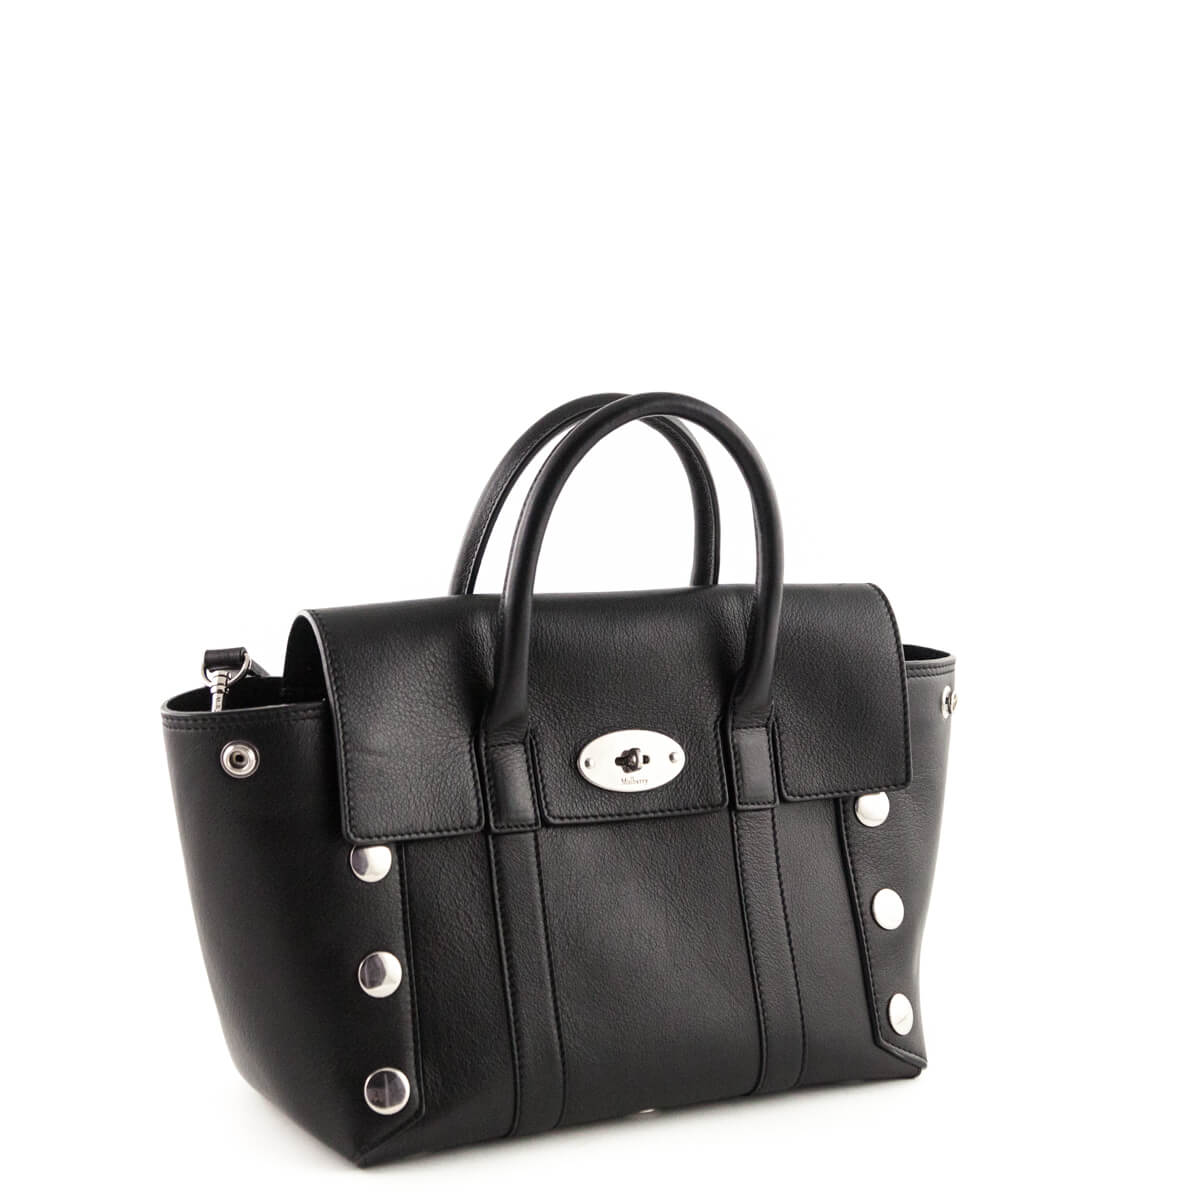 ... Mulberry Black Calfskin Small Studded New Bayswater Tote - LOVE that BAG  - Preowned Authentic Designer ... c8b42c4ba9253